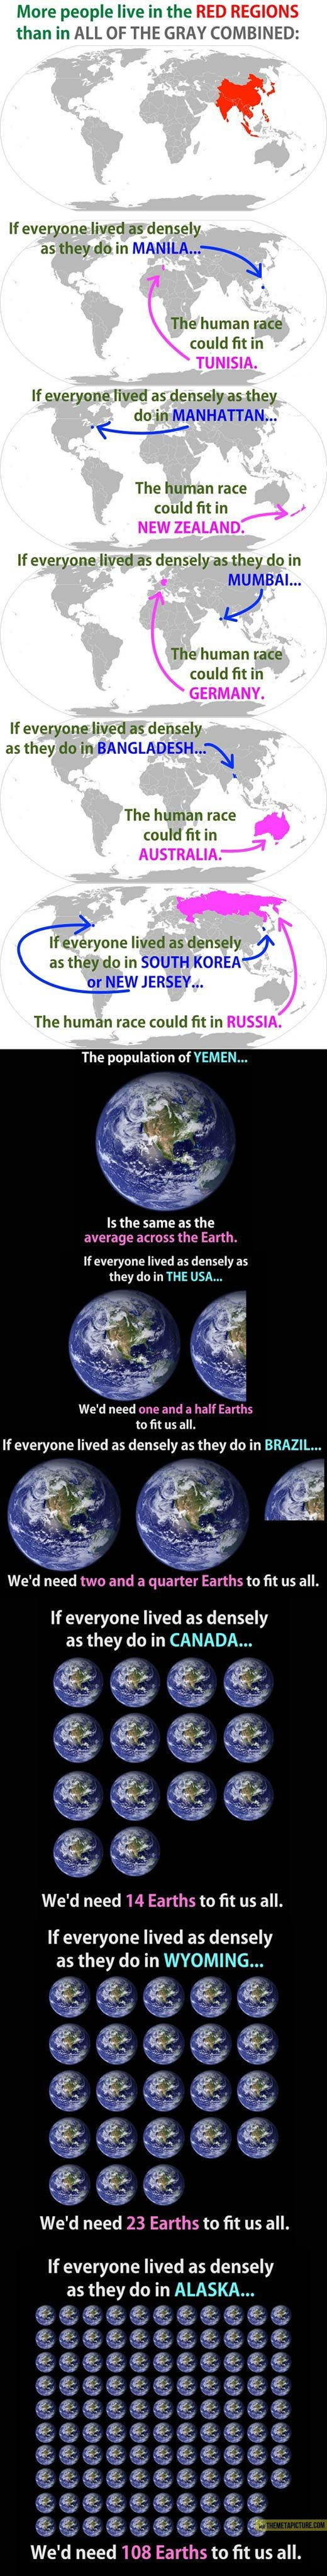 An incredible way to look at the distribution of people over the earth. It's scary and awesome at the same time. And it's bizarre that New Jersey got mentioned! We have a densely populated state, but where I live, in central/south New Jersey, it is full of open space. We have land between villages and towns. Hmm. Hard to grasp.